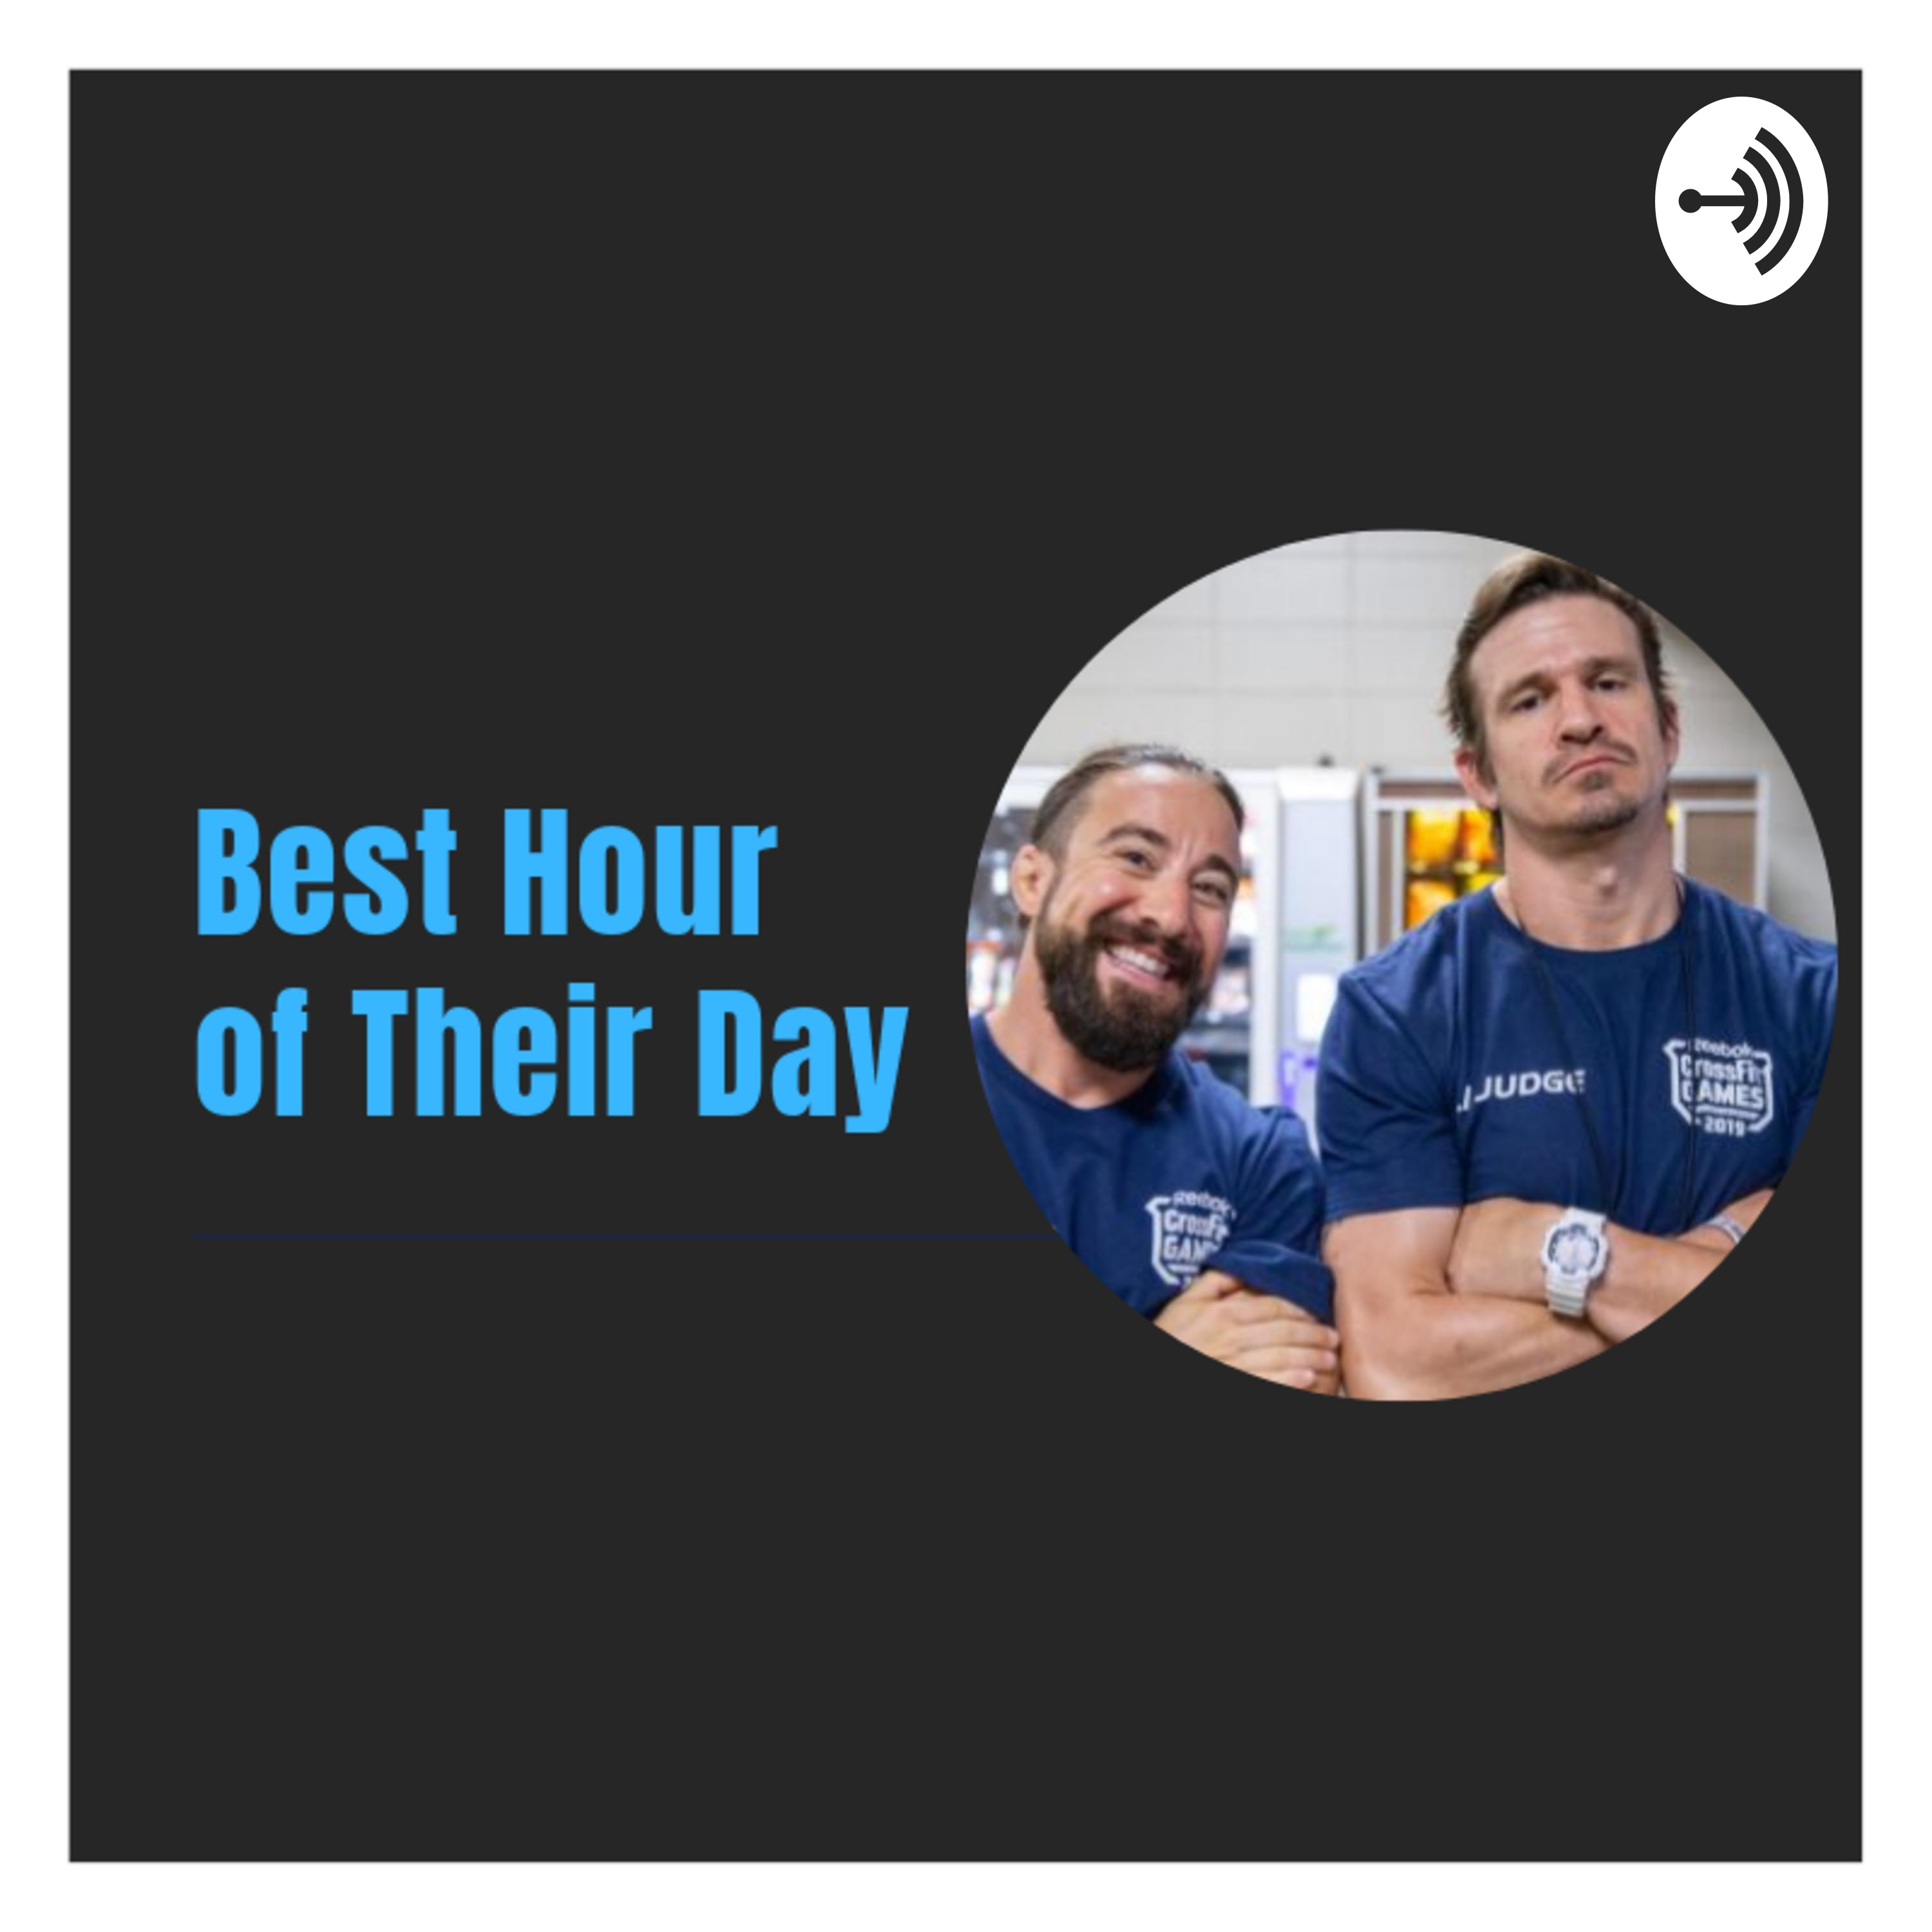 Best Hour of Their Day